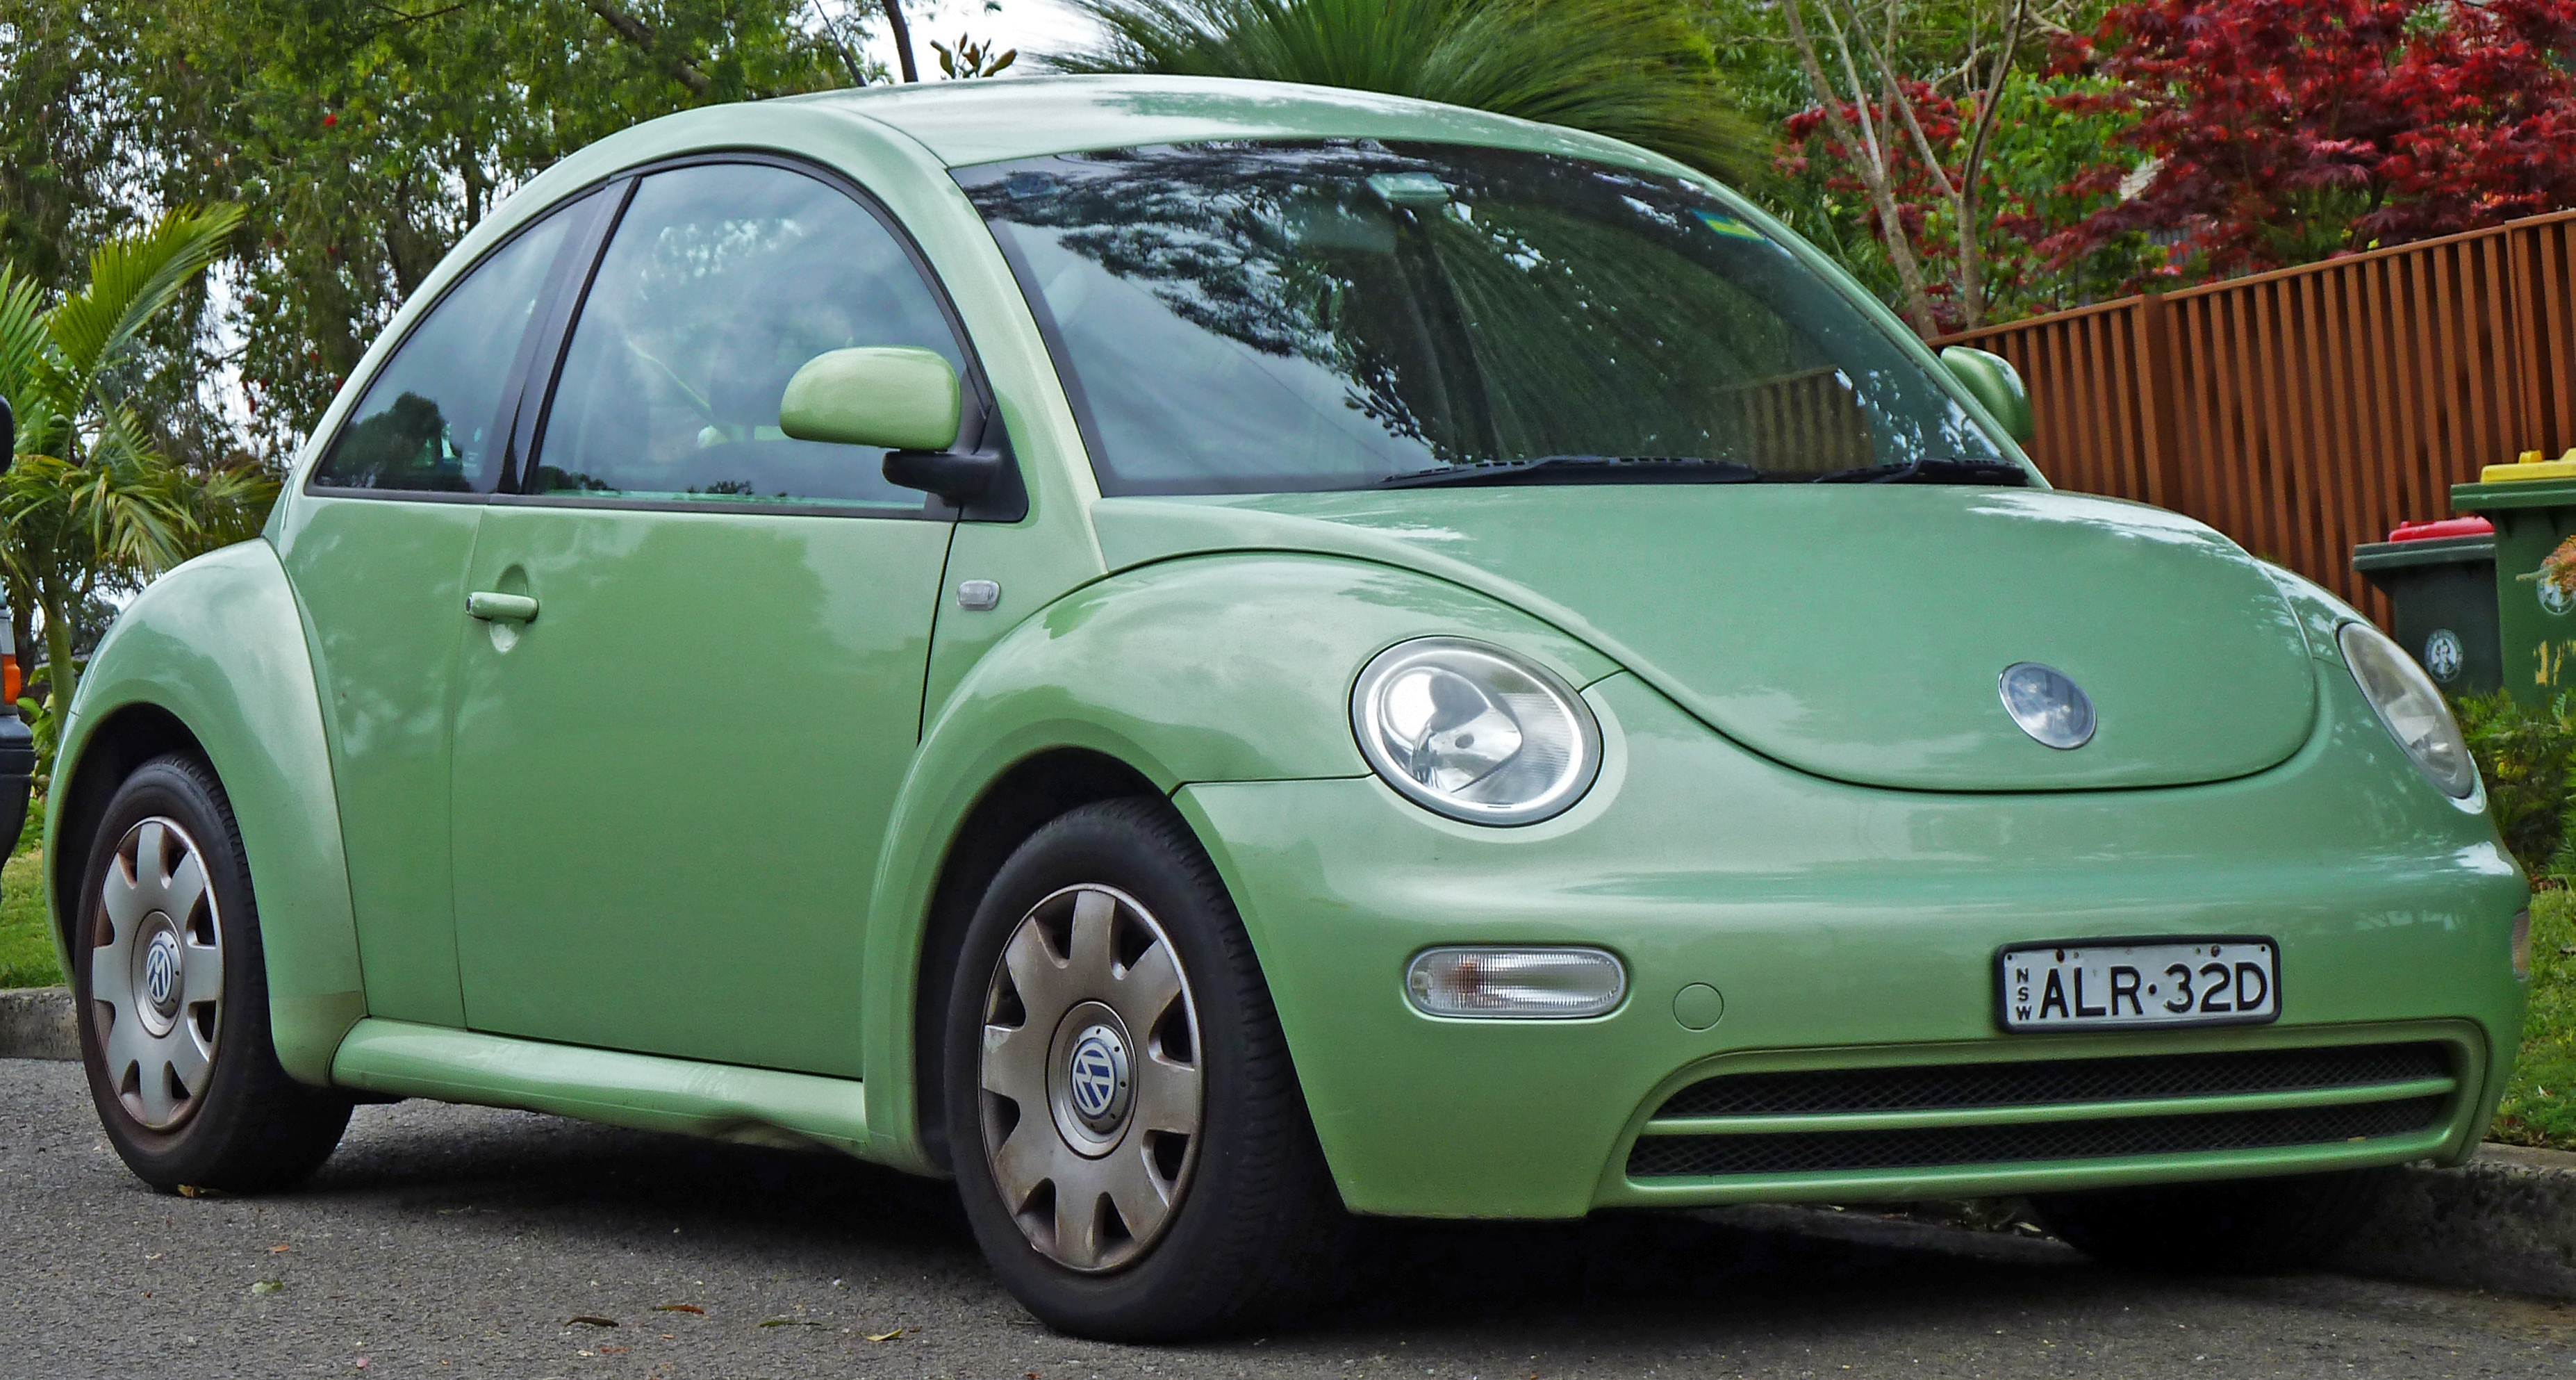 Volkswagen Beetle Wallpapers Images Photos Pictures